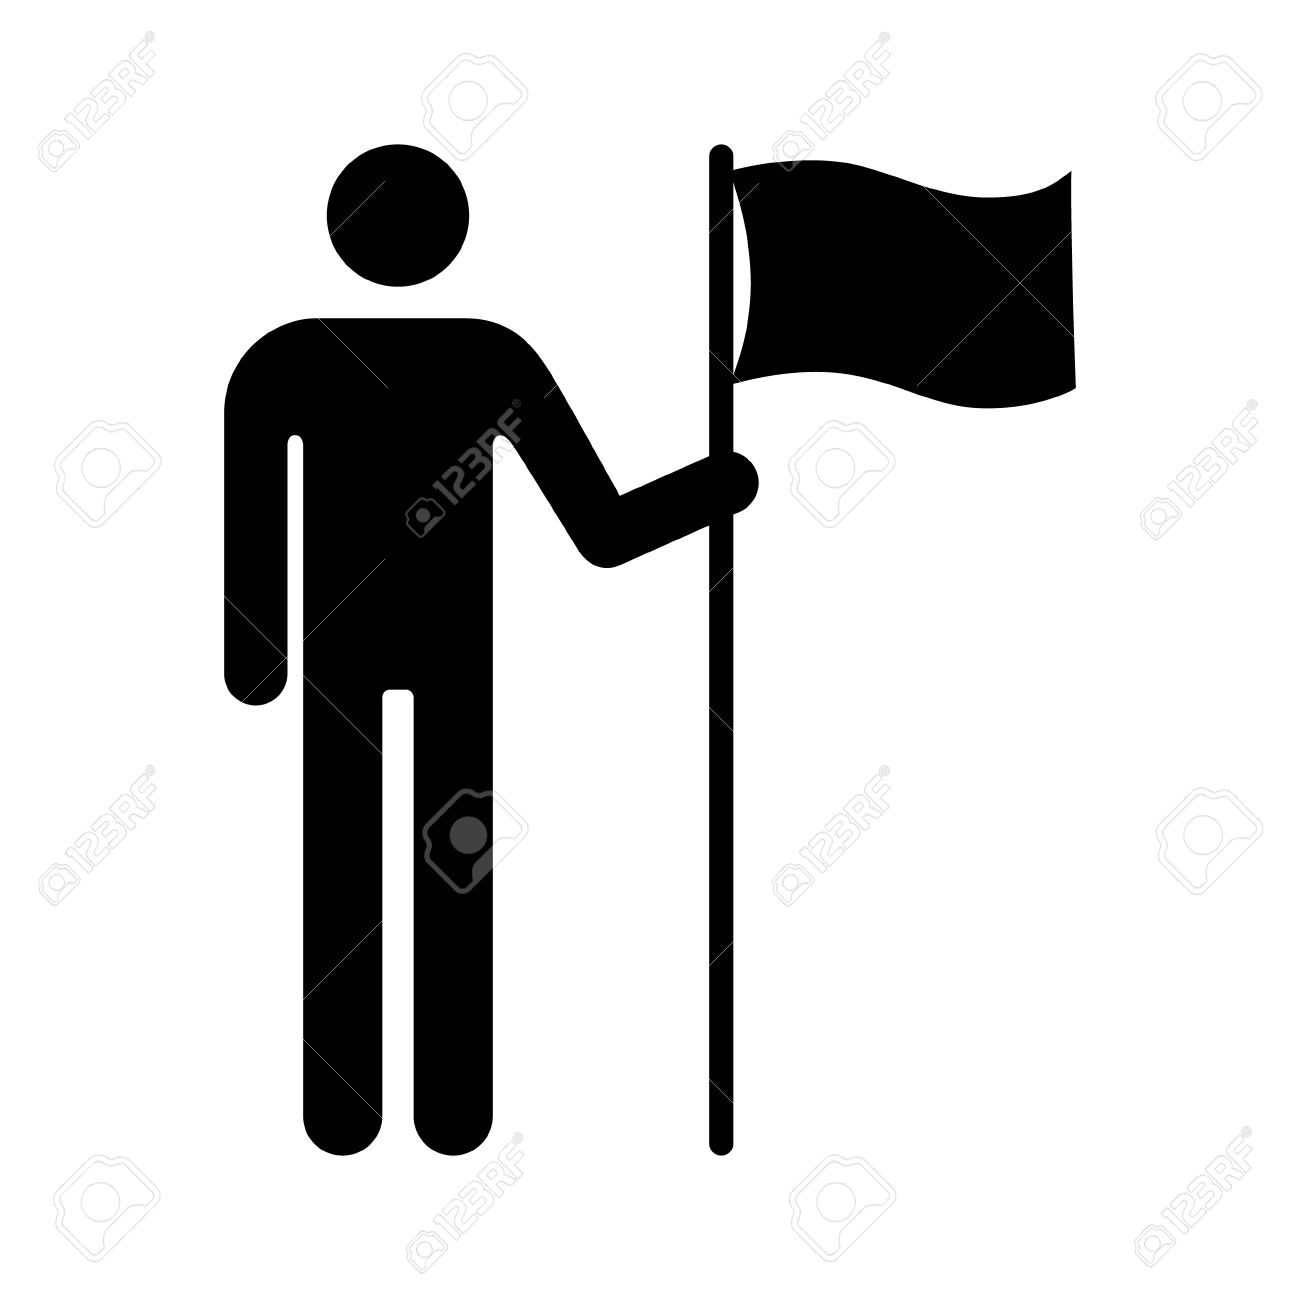 White apron homebase - Homebase Man Holding Flag Or Person Holding Flag Flat Icon For Apps And Websites